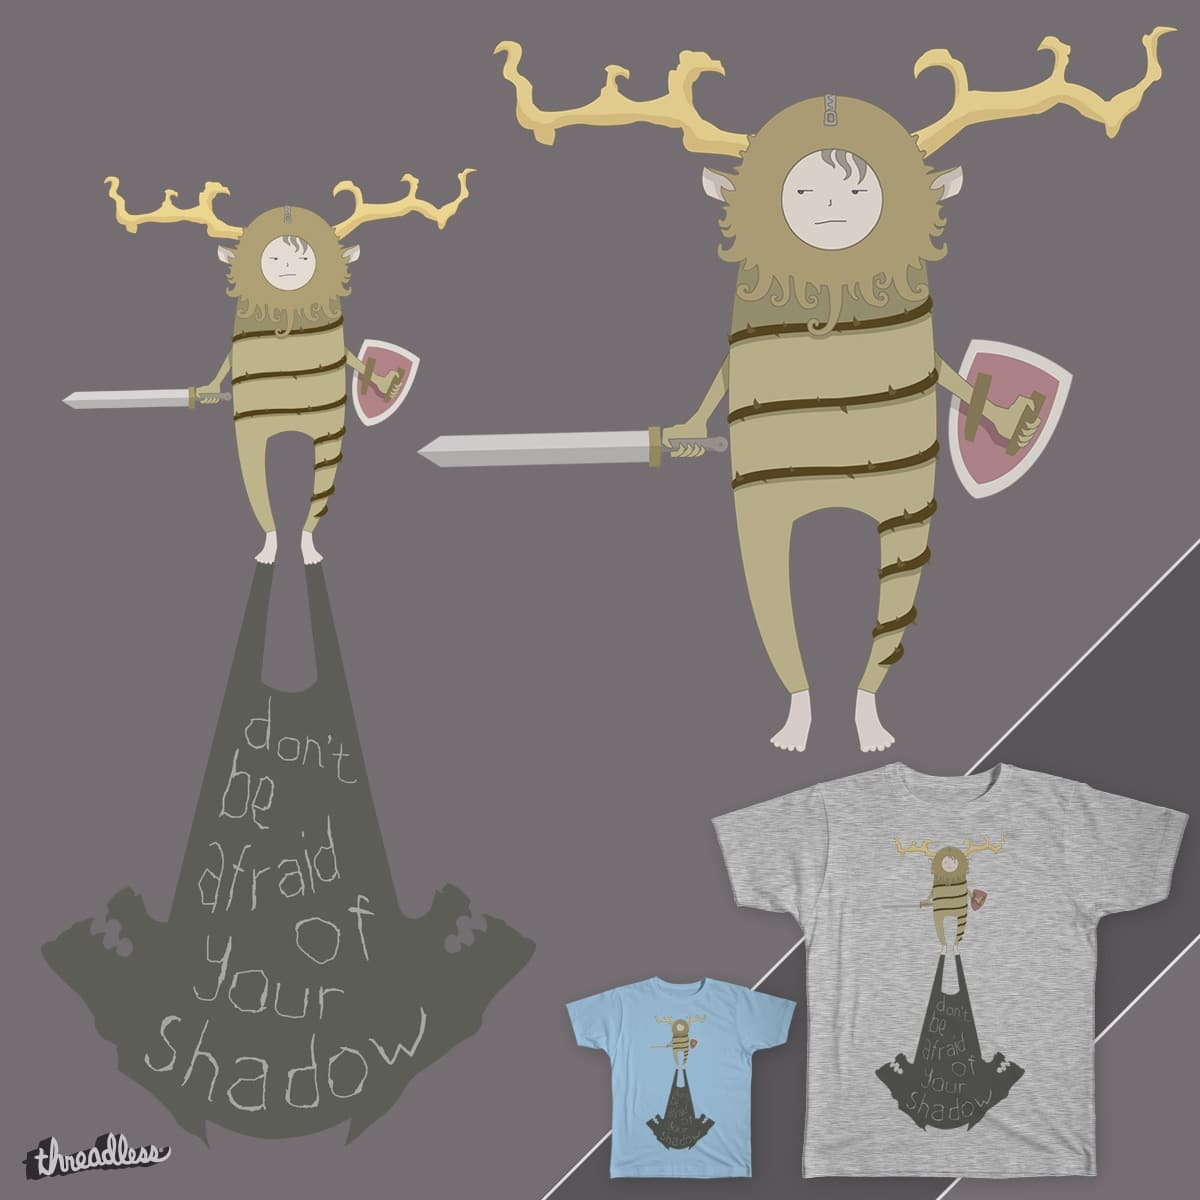 Kid Courage by astheoceansblue on Threadless